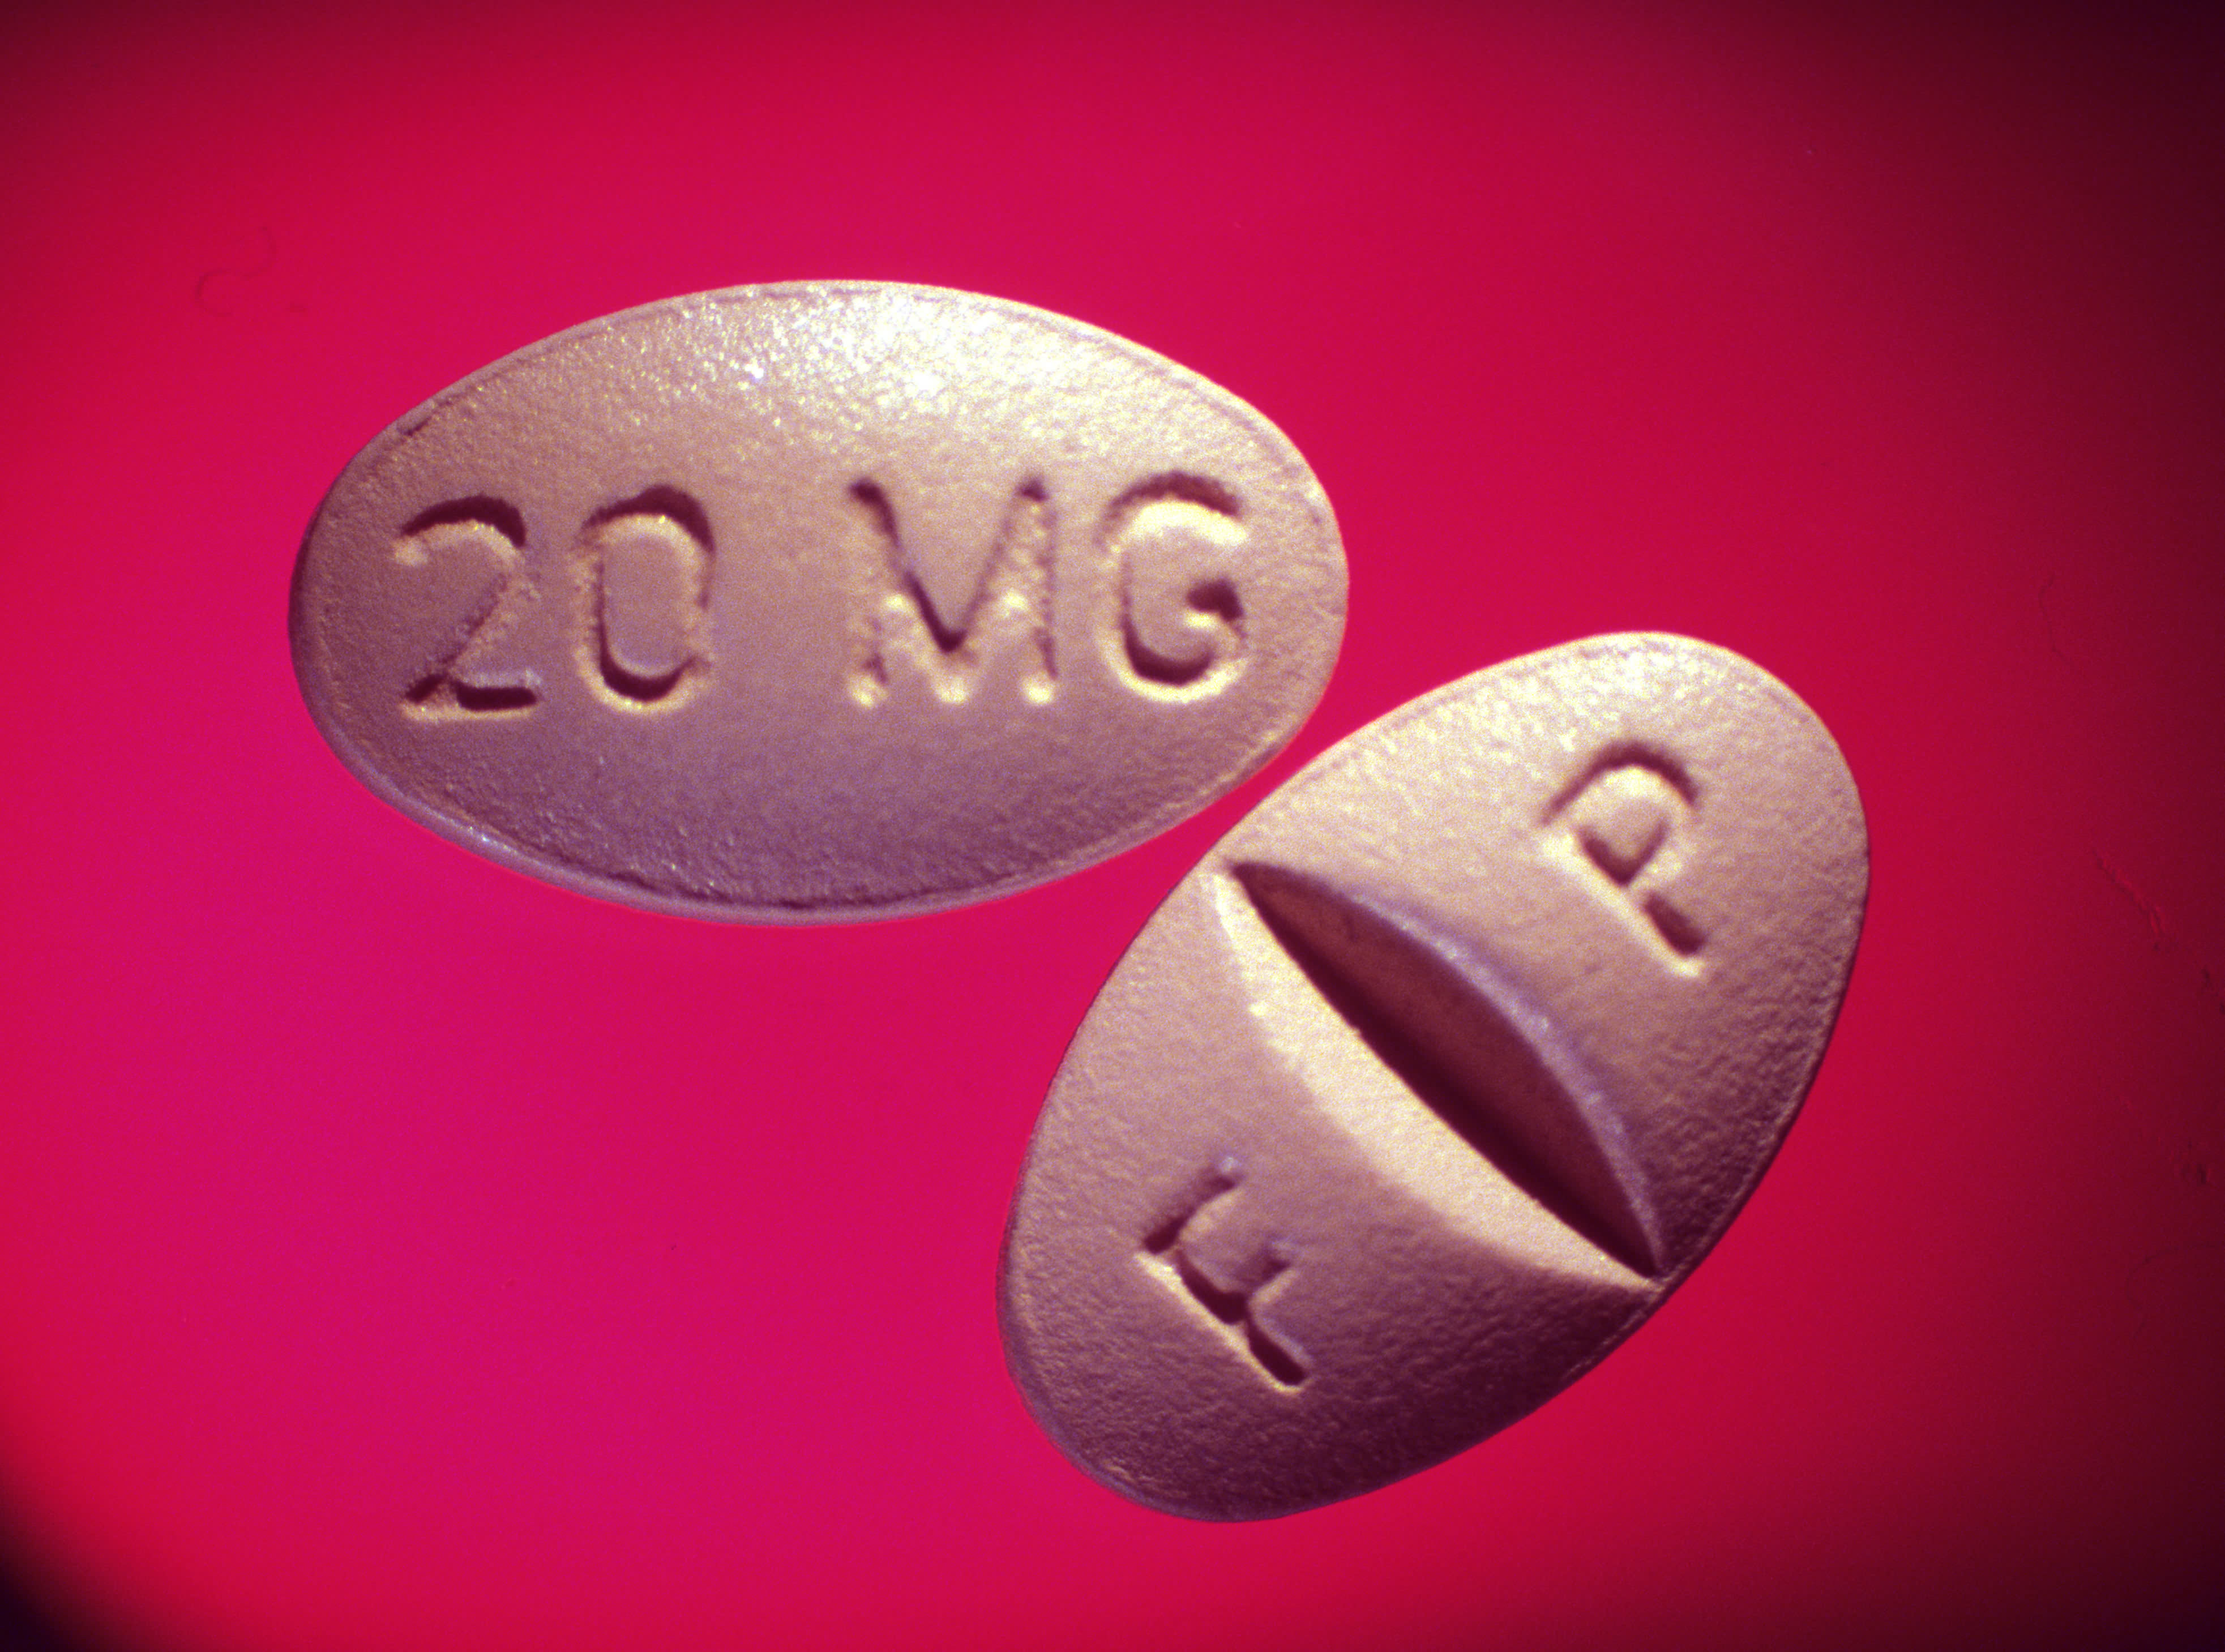 State 20 Paroxetine mg sex hcl consider